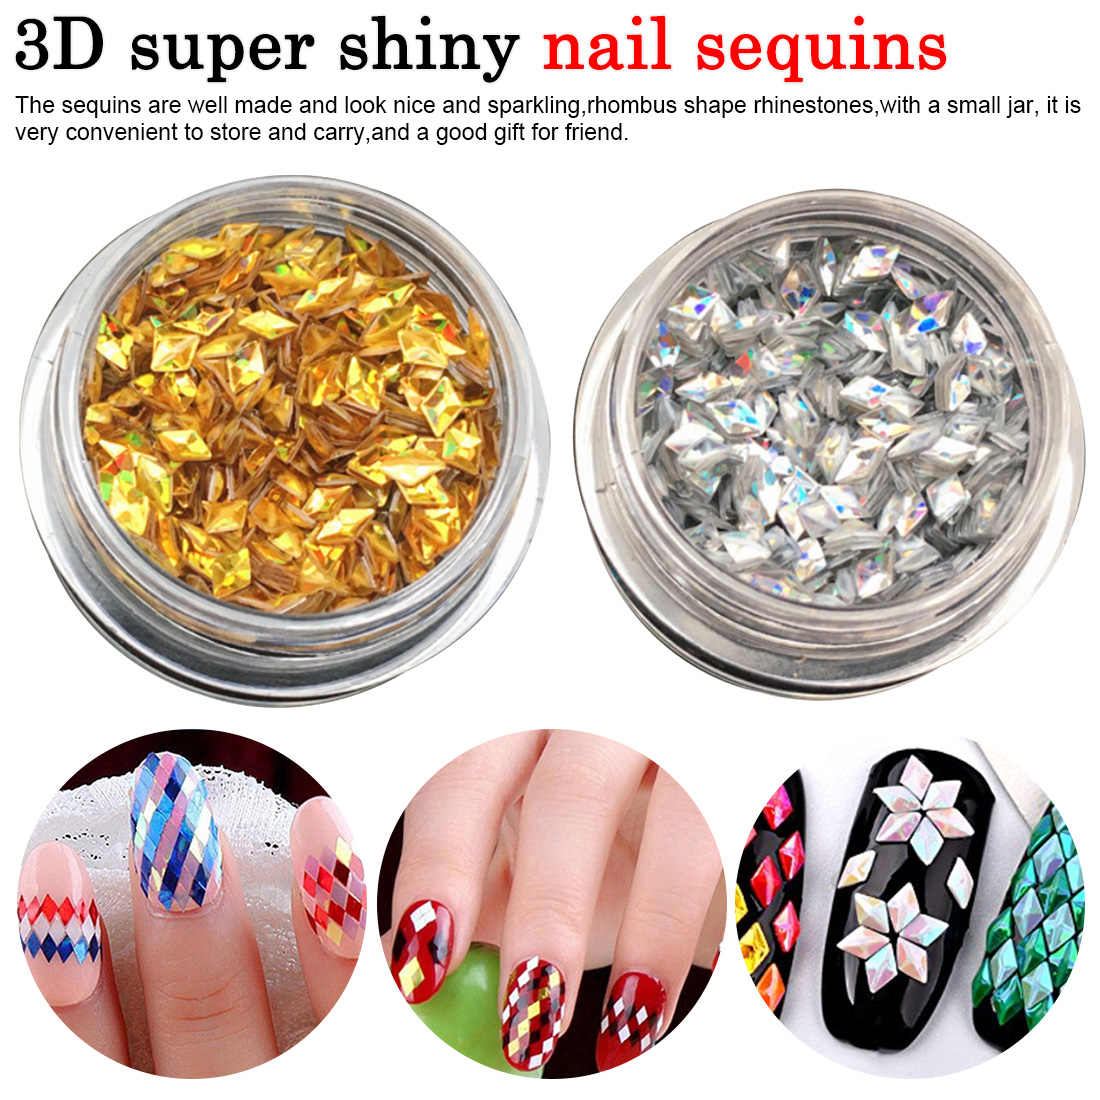 1g/box Holo 3D Diamond Sequins Super Shiny Triangle Paillette Nail Art Decorations AB Chameleon Nail Glitter Sequins